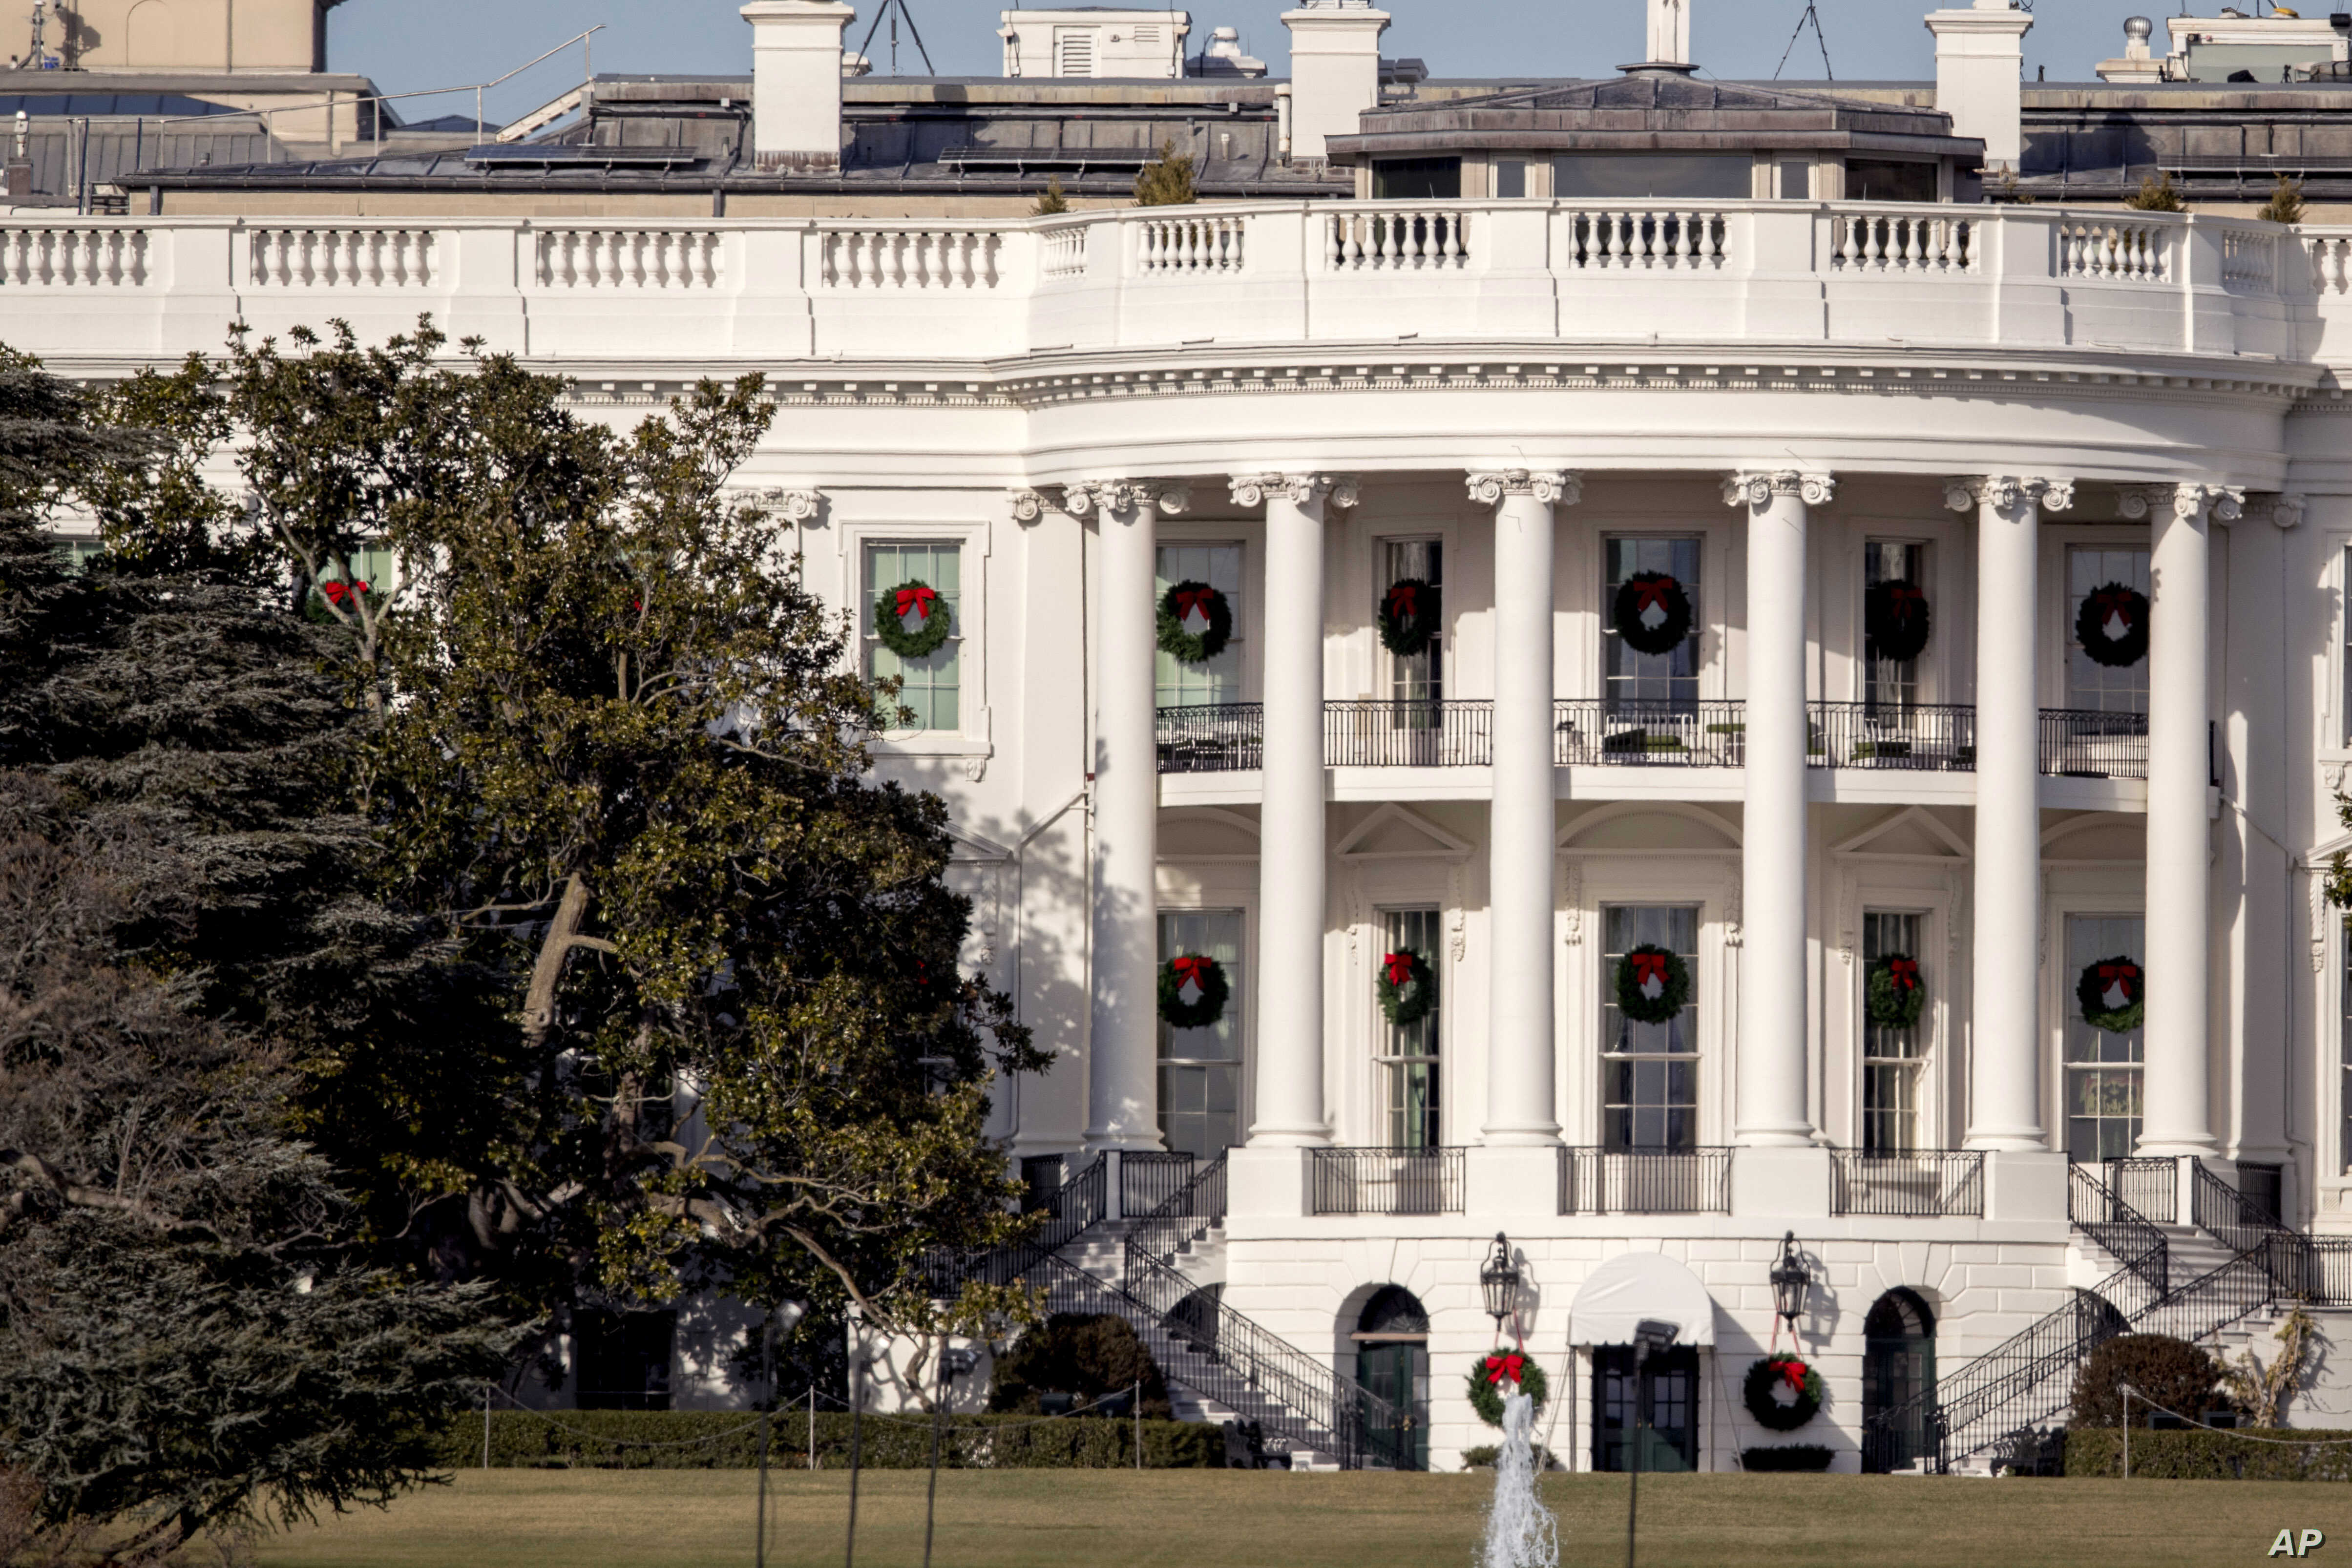 Oldest Tree On White House Grounds To Be Cut Down Voice Of America